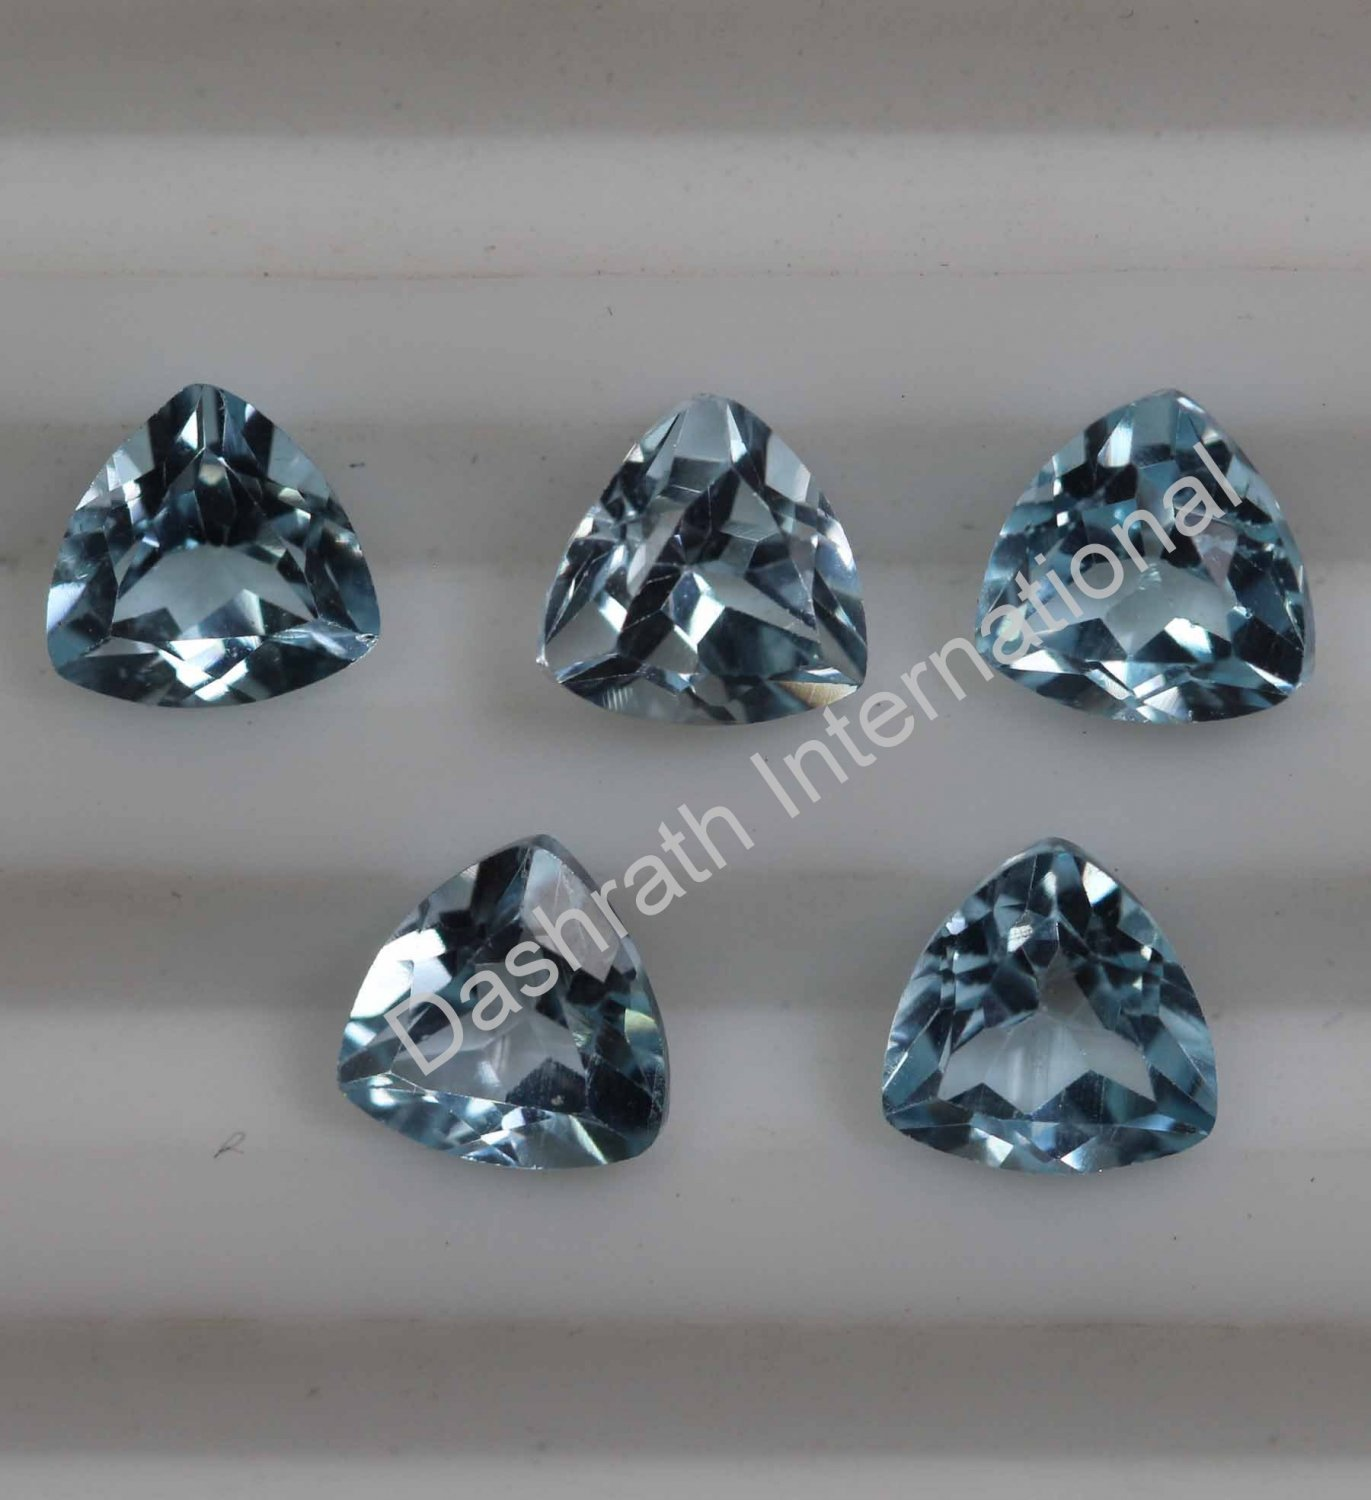 4mm Natural Sky Blue Topaz Faceted Cut Trillion 5 Pieces Lot  Top Quality Loose Gemstone